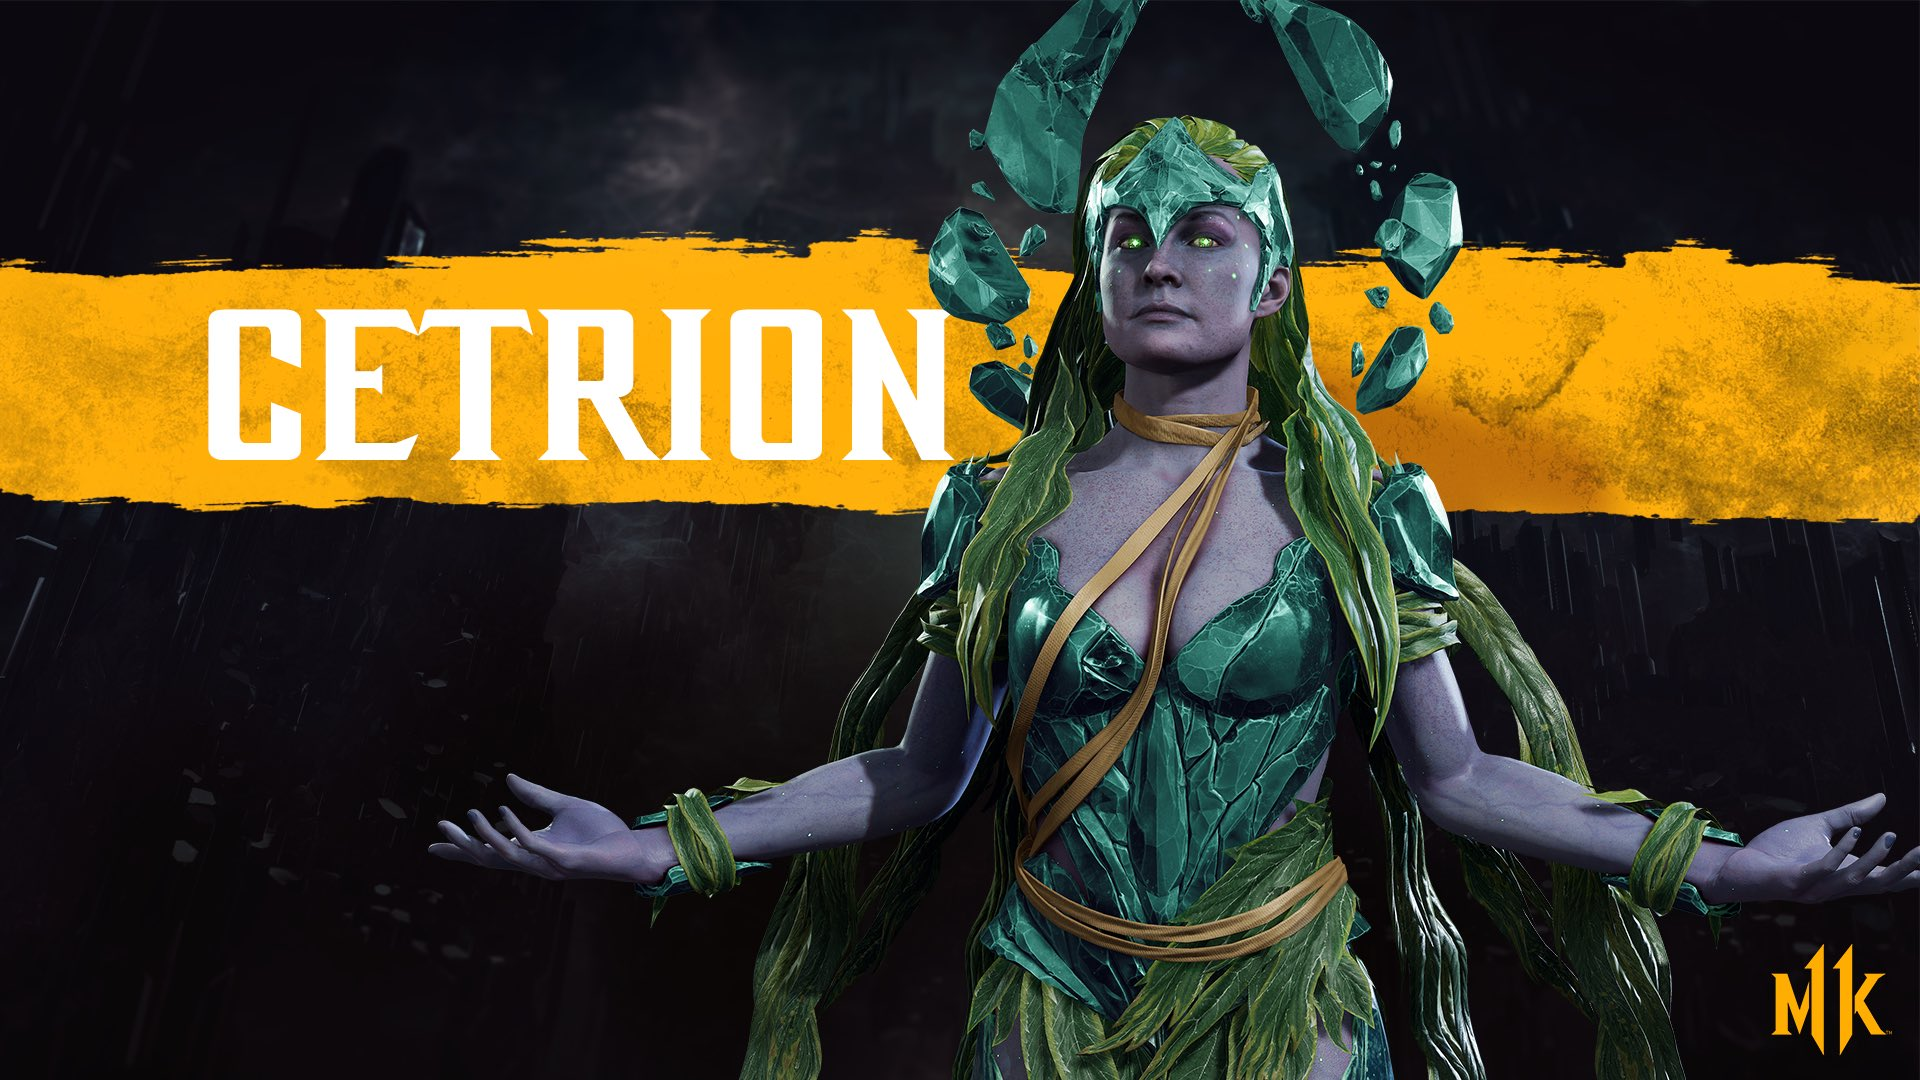 Mortal Kombat 11 background - Cetrion